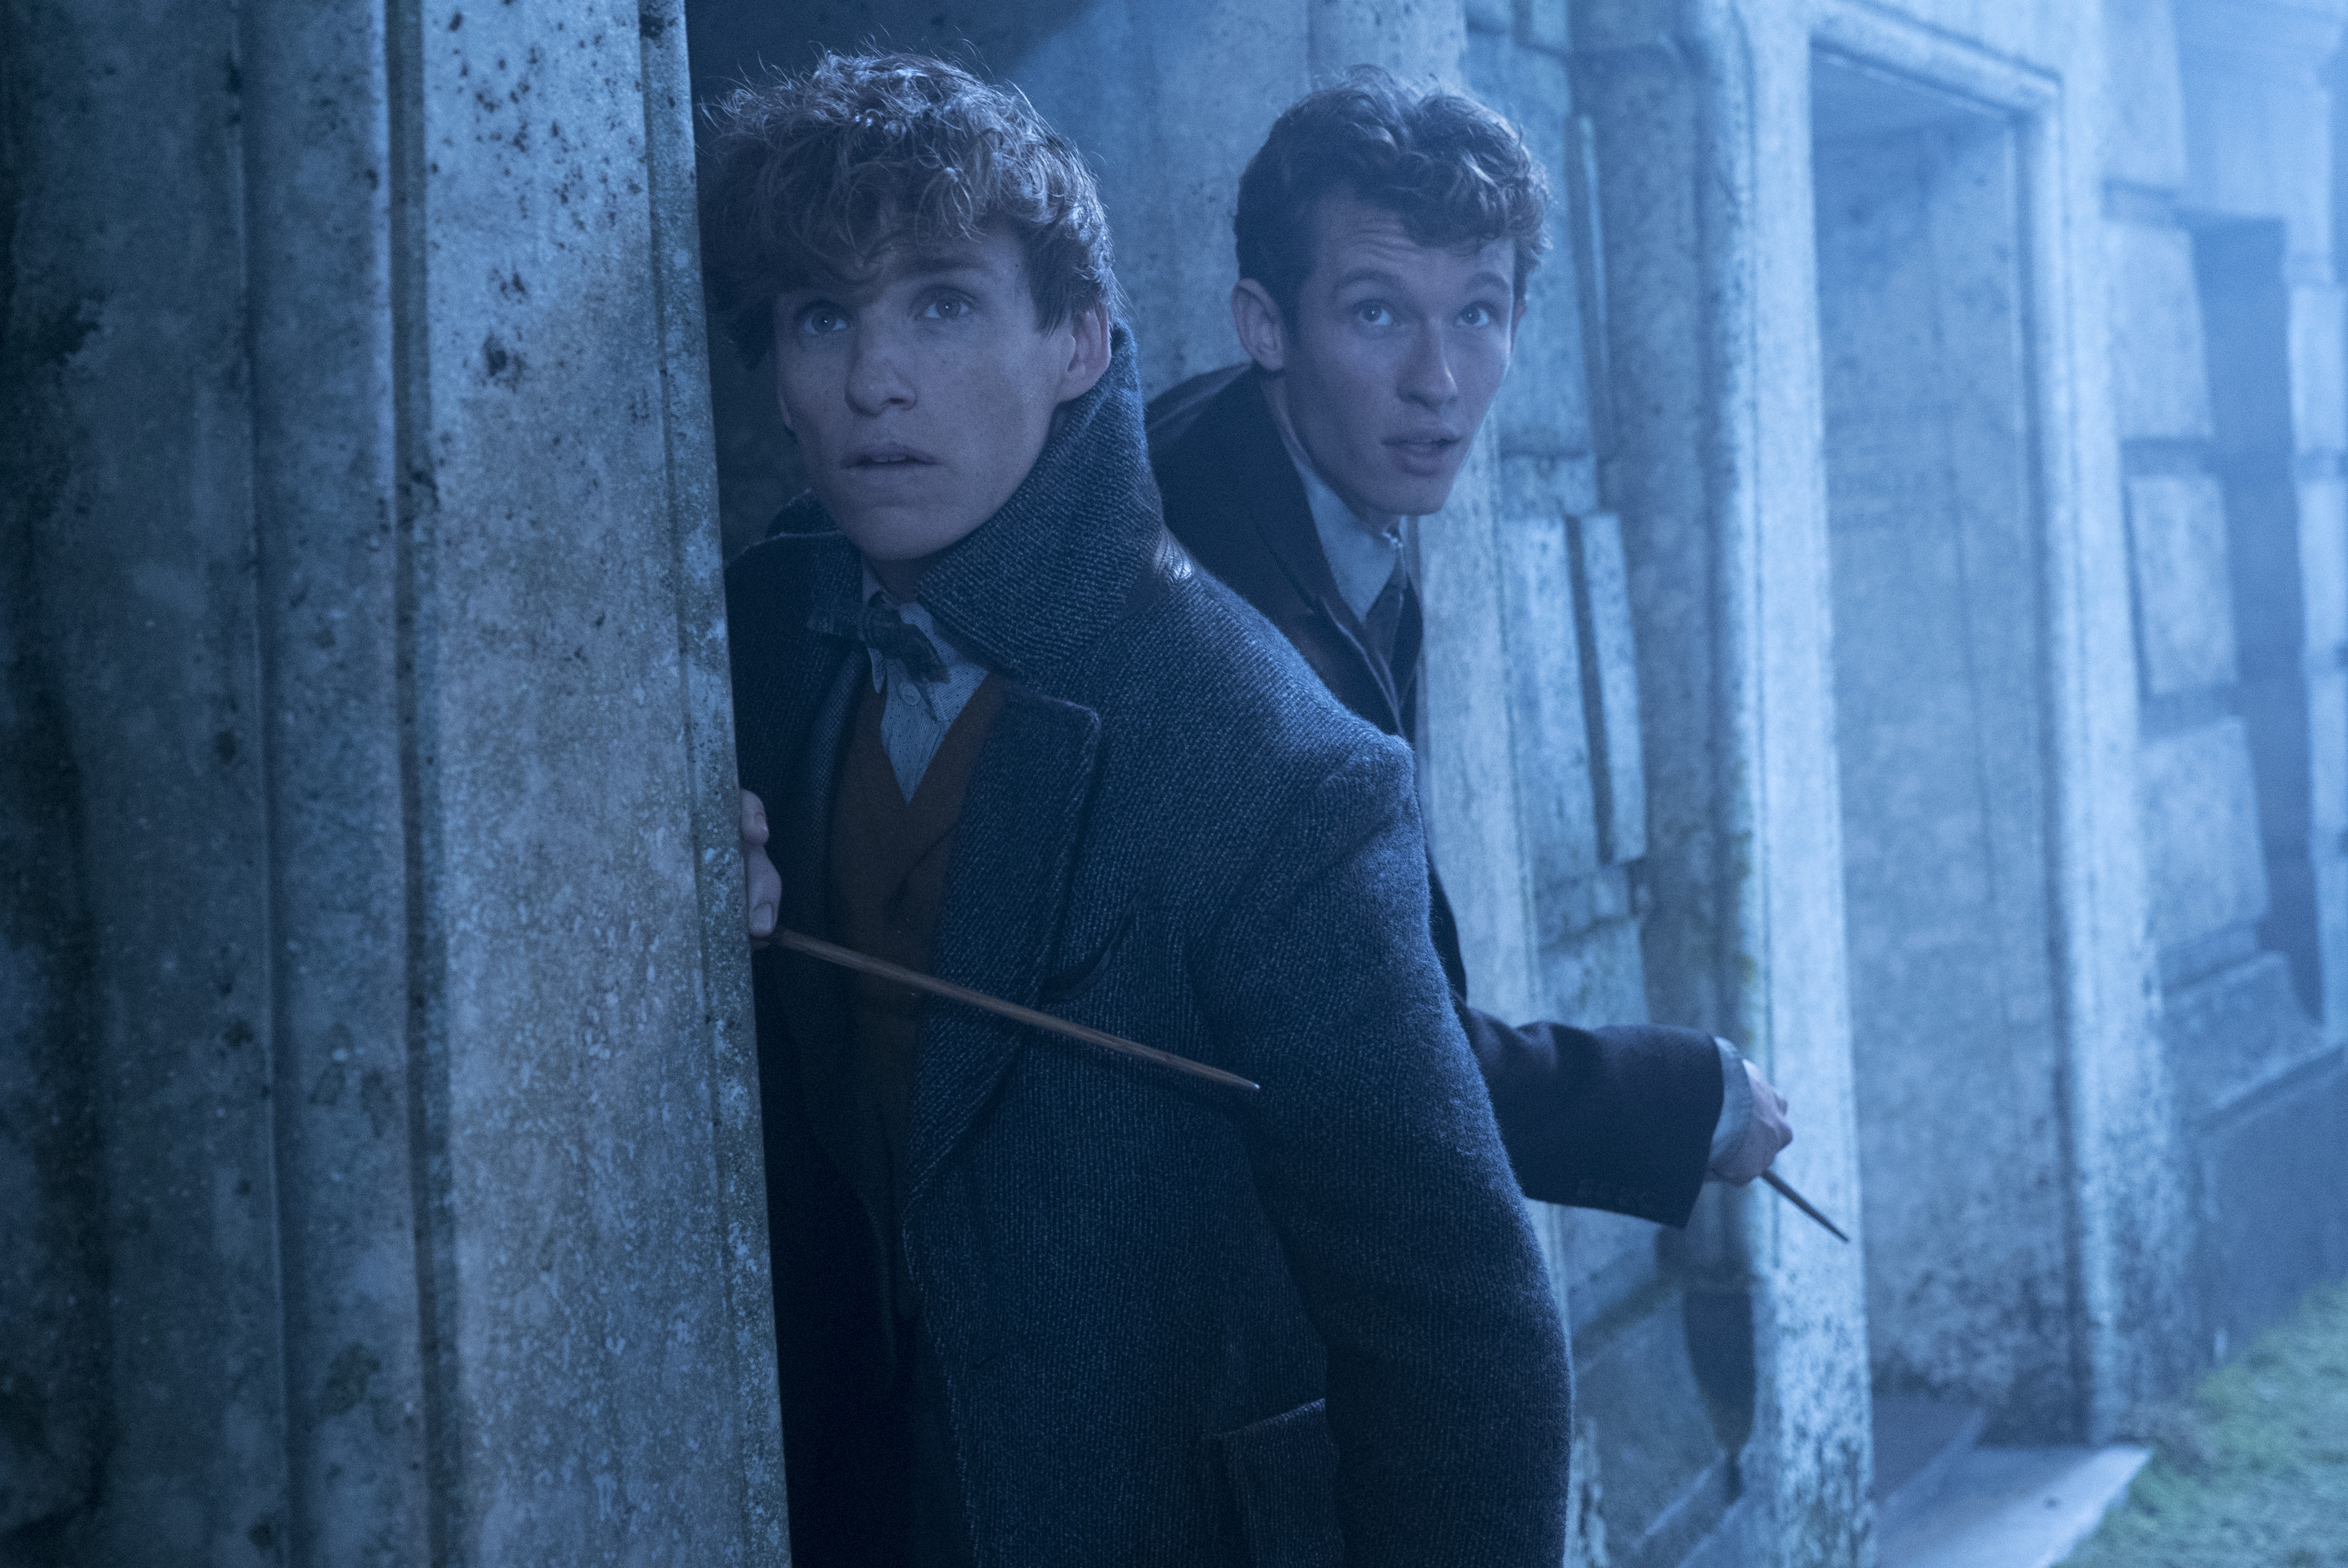 Newt and Theseus Scamander scout around a corner.